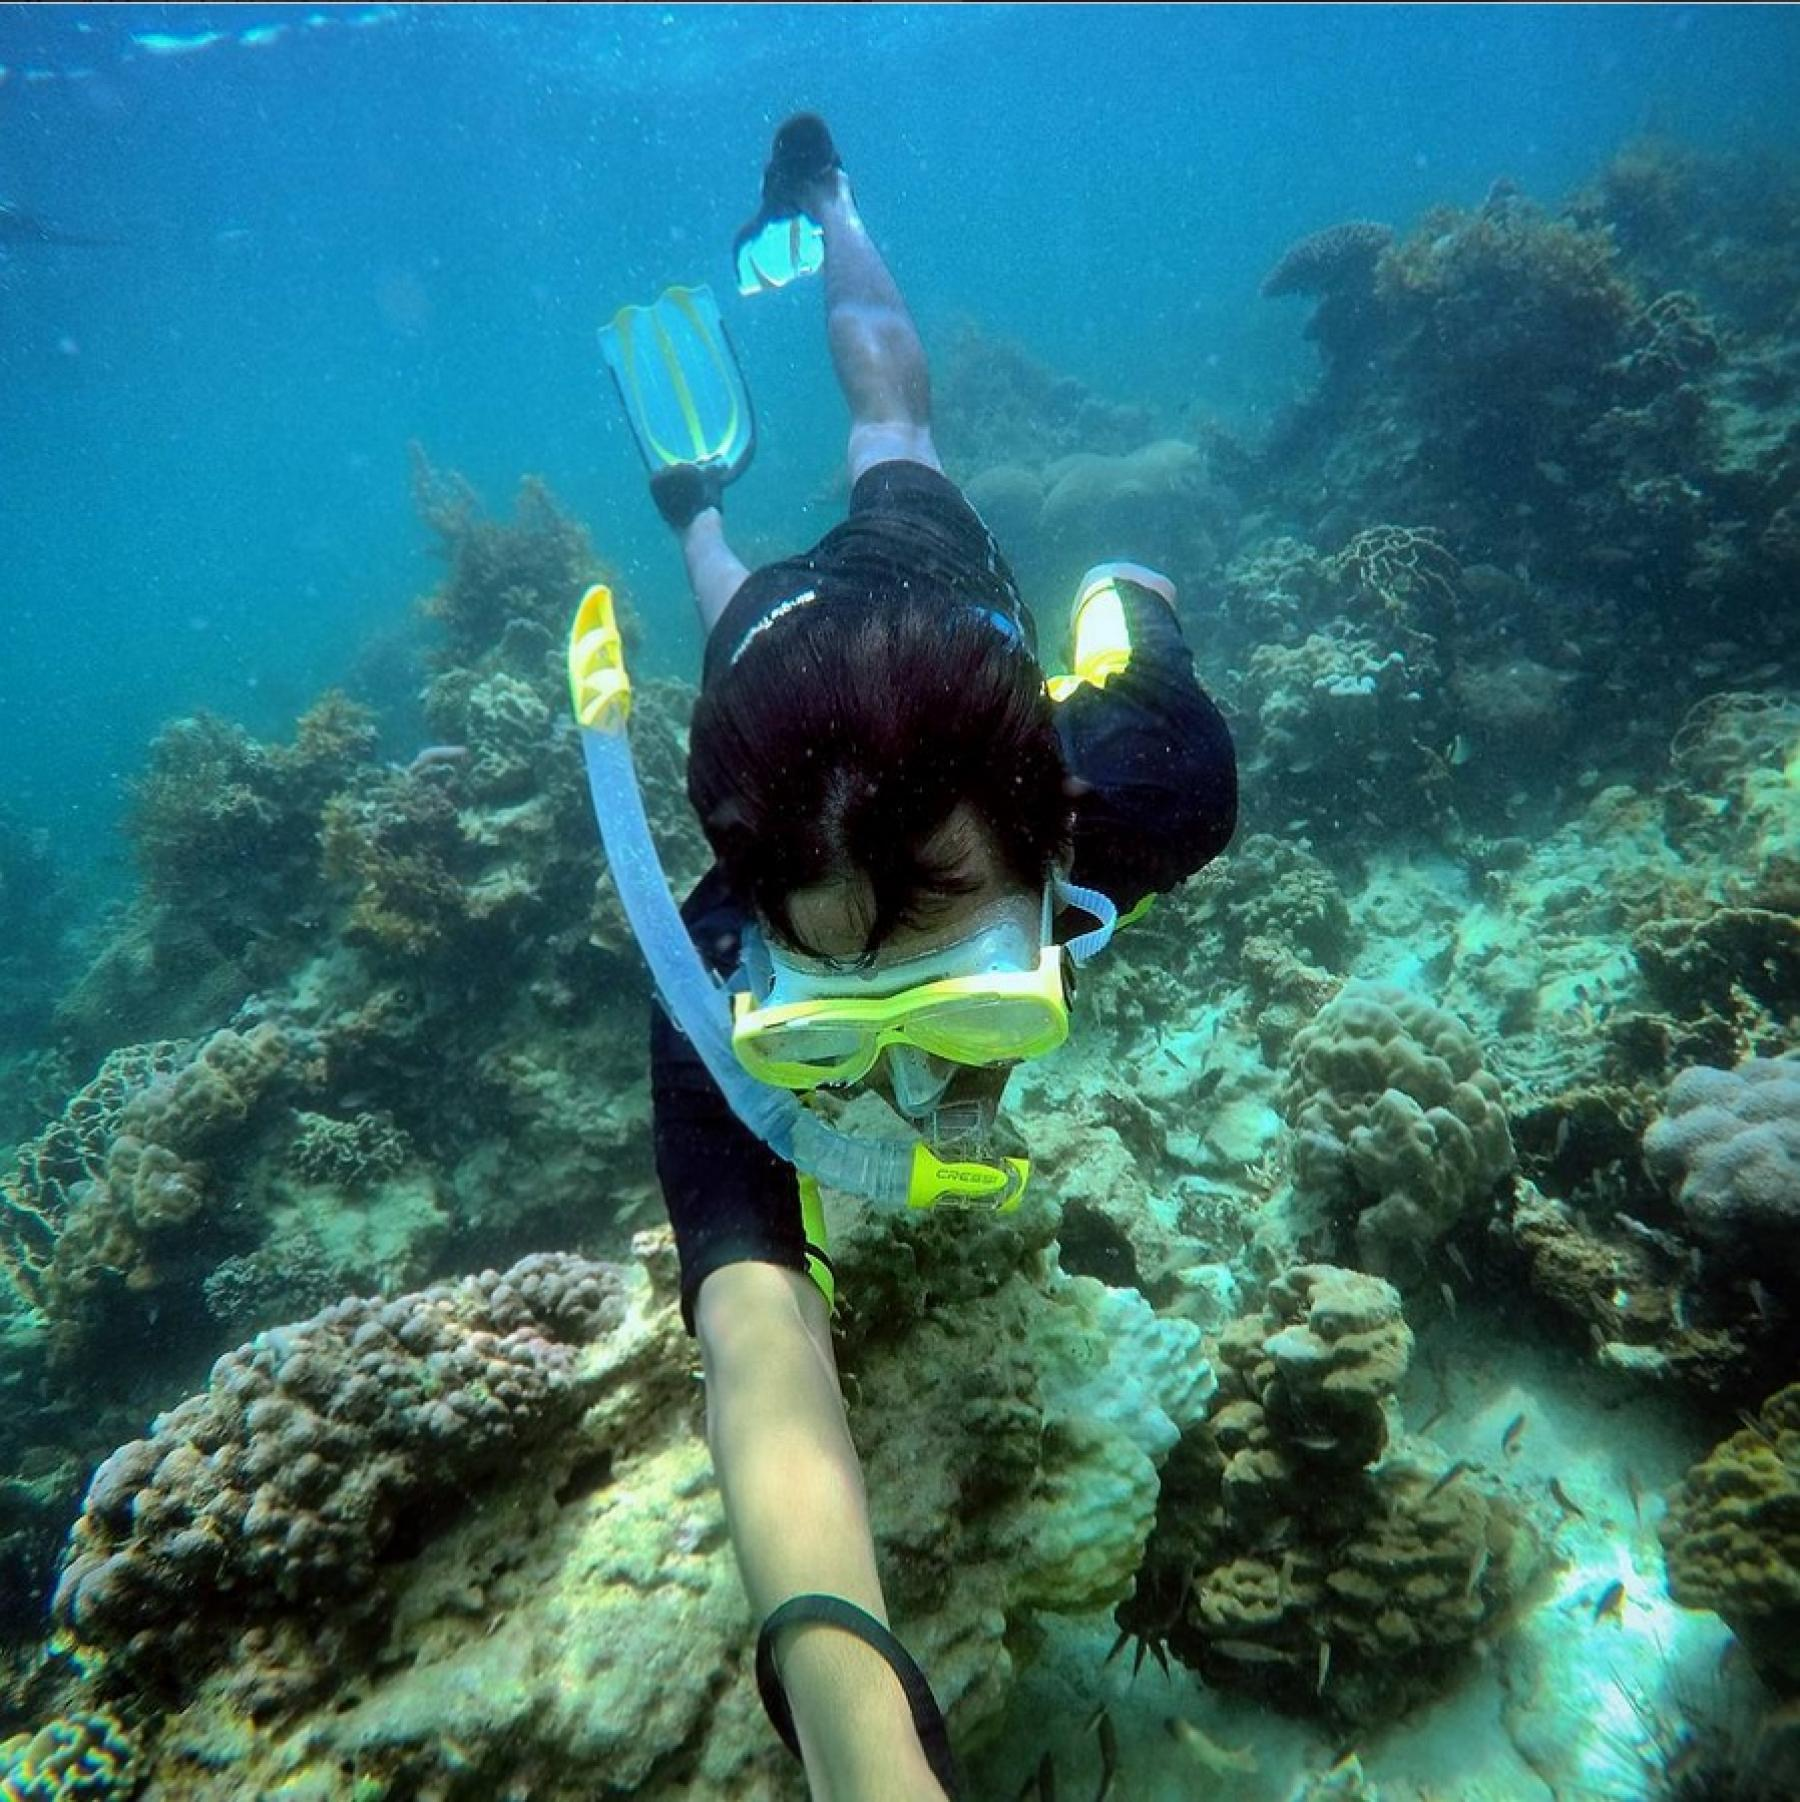 Let's go No-Man Islands and Snorkel - Rerun starting at Abang Island, Batam City, Riau Islands, Indonesia